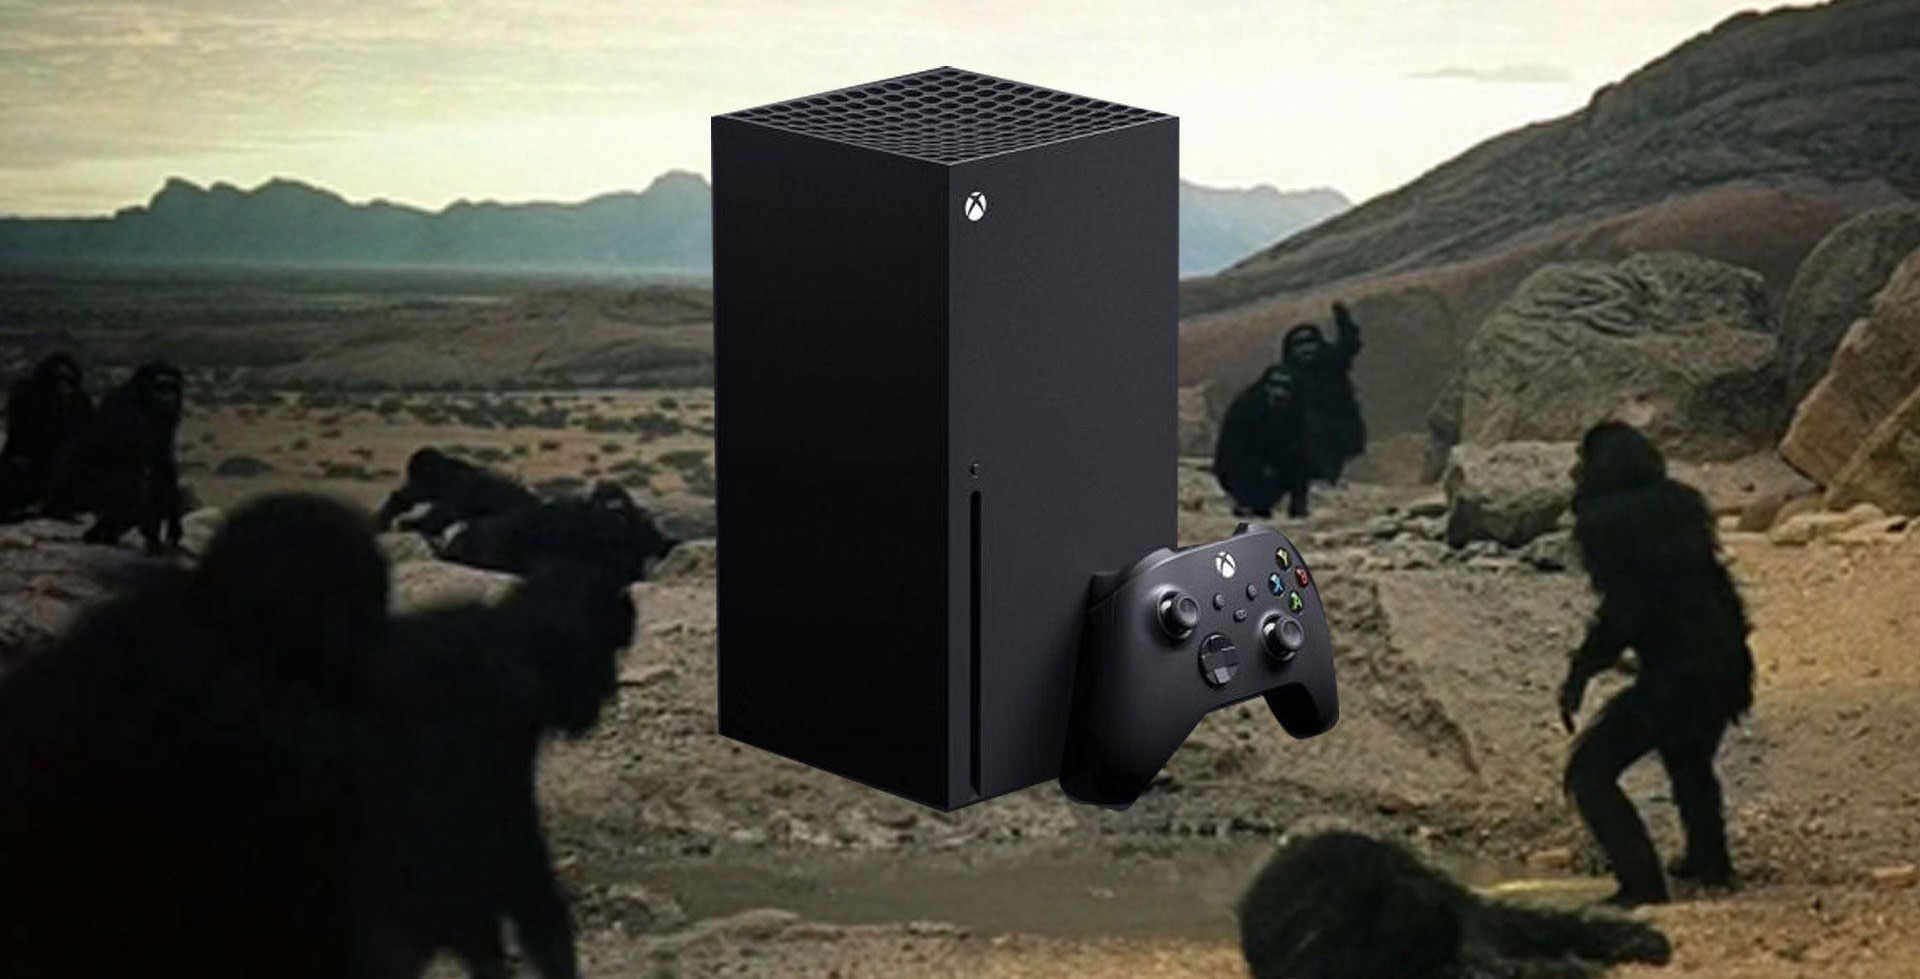 These Gaming Console Memes Are Top Tier Film Daily